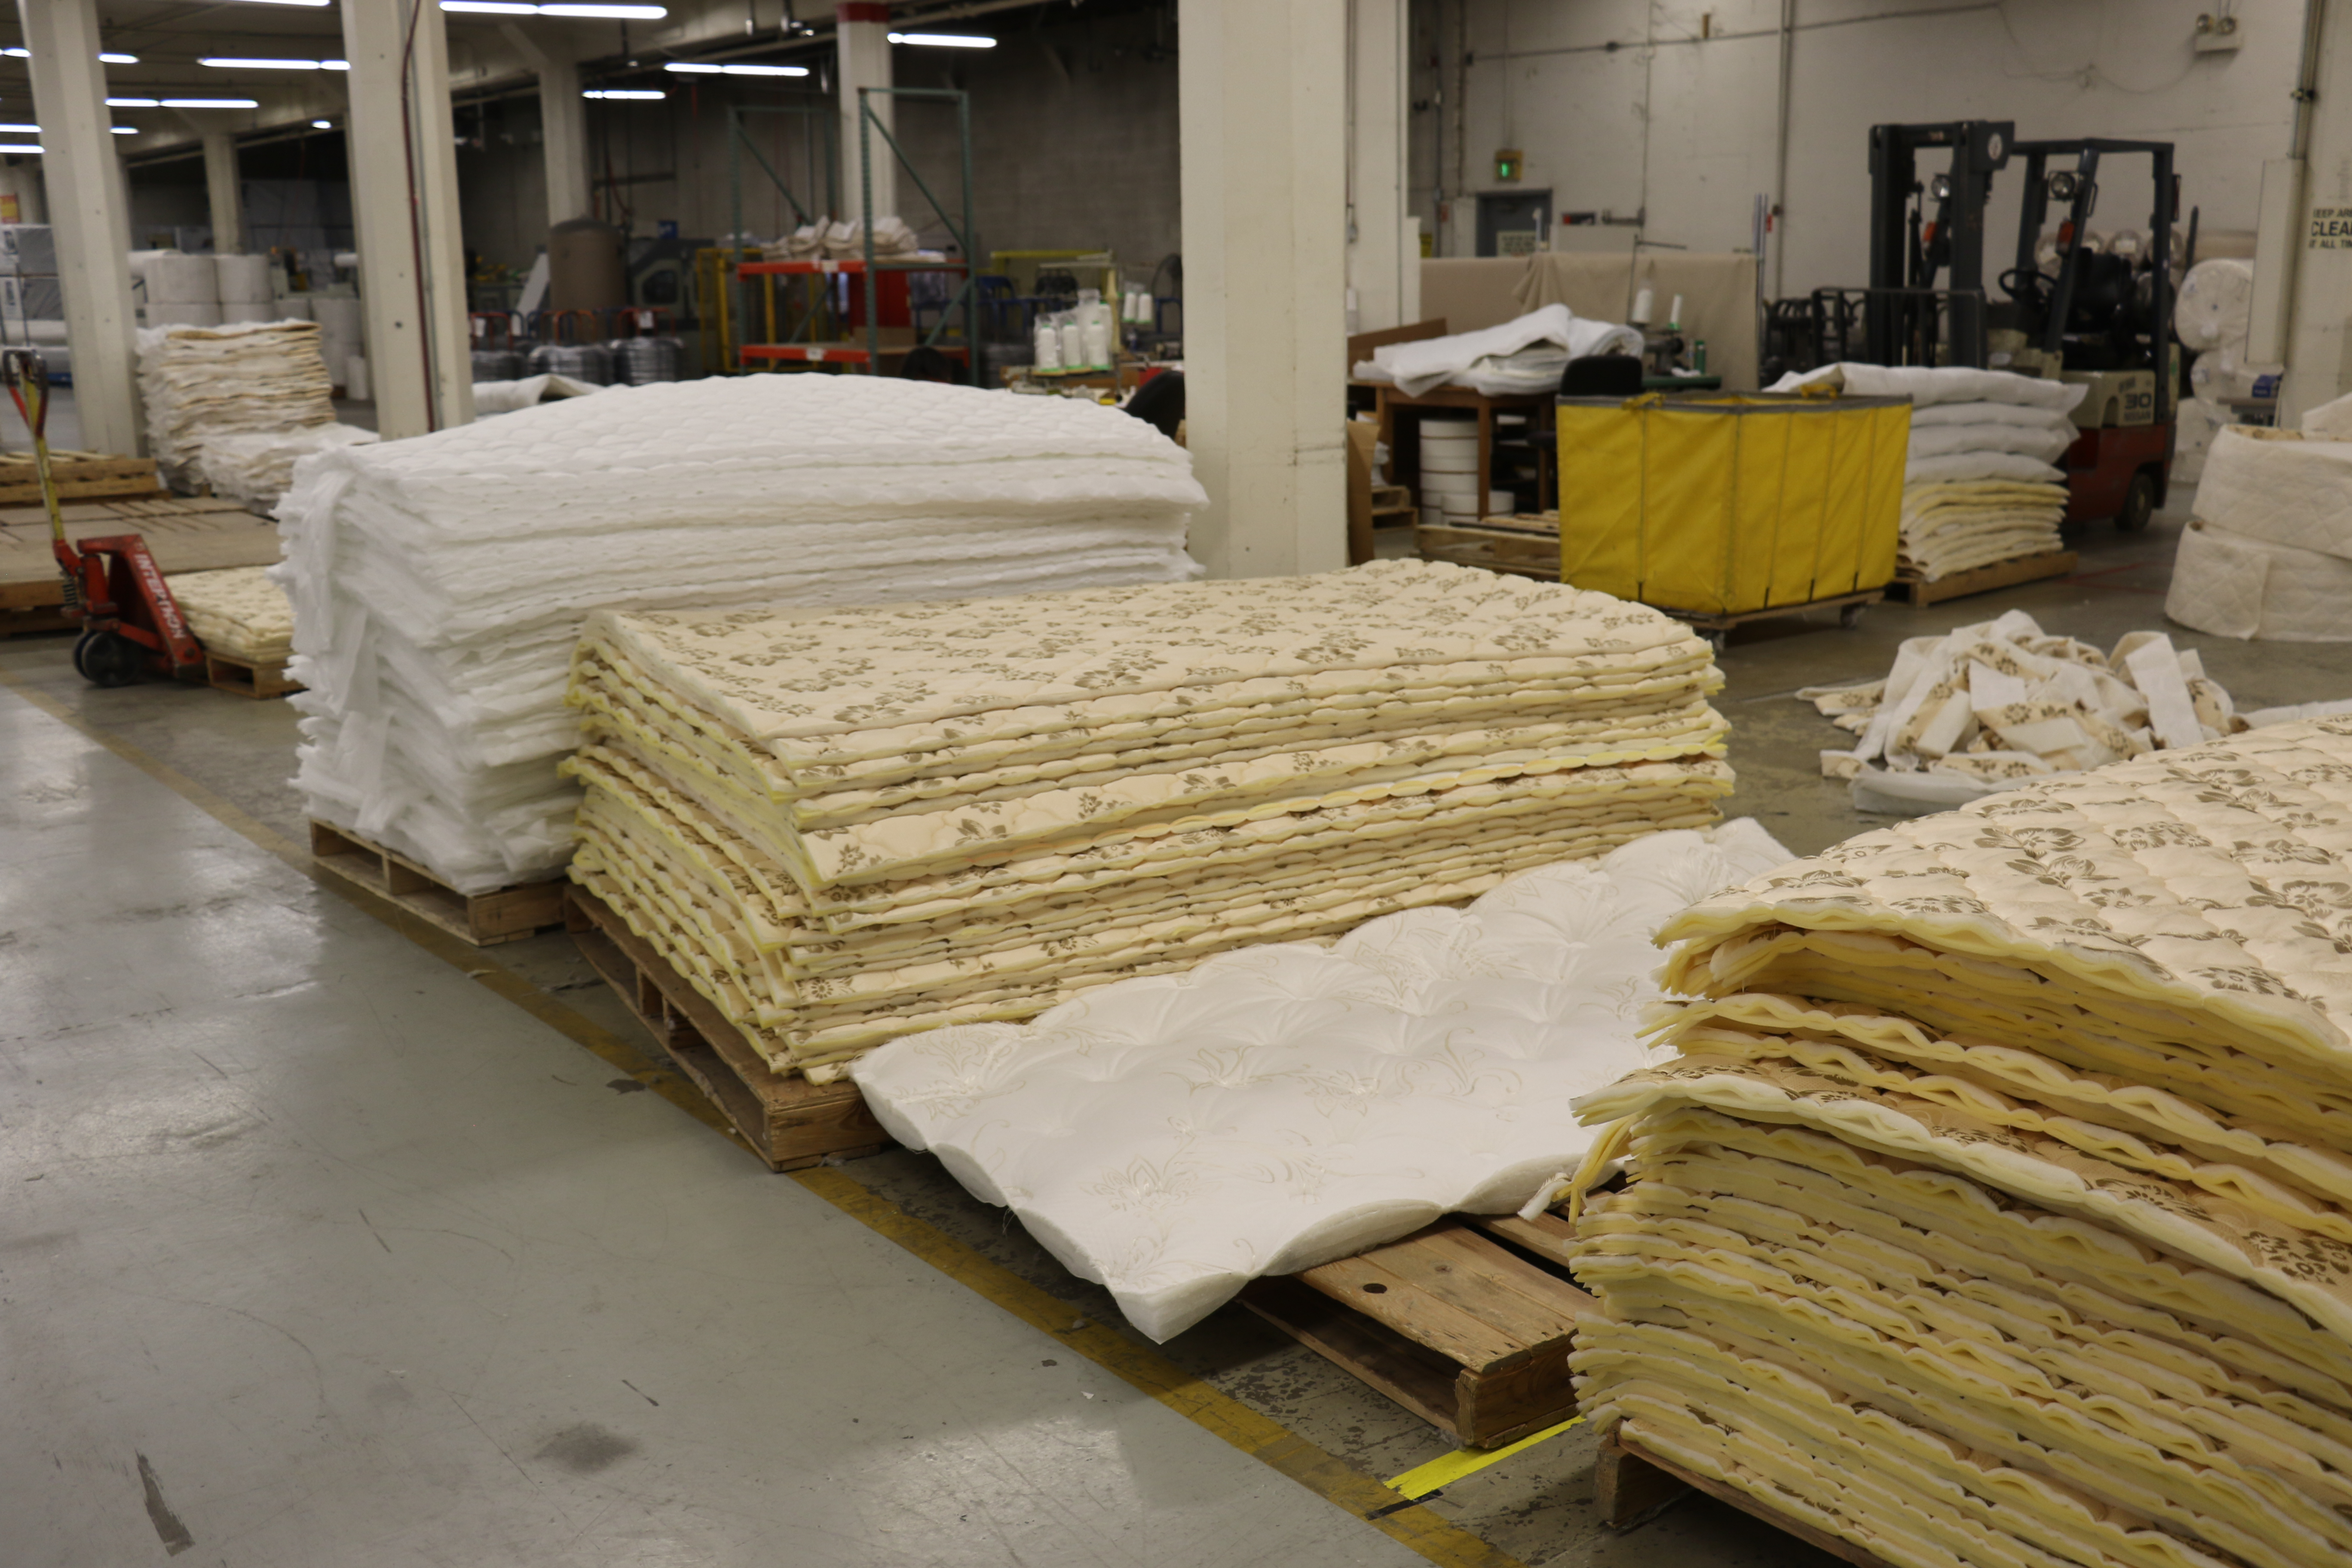 Different quilting options for mattresses made in the Deseret Manufacturing facility.